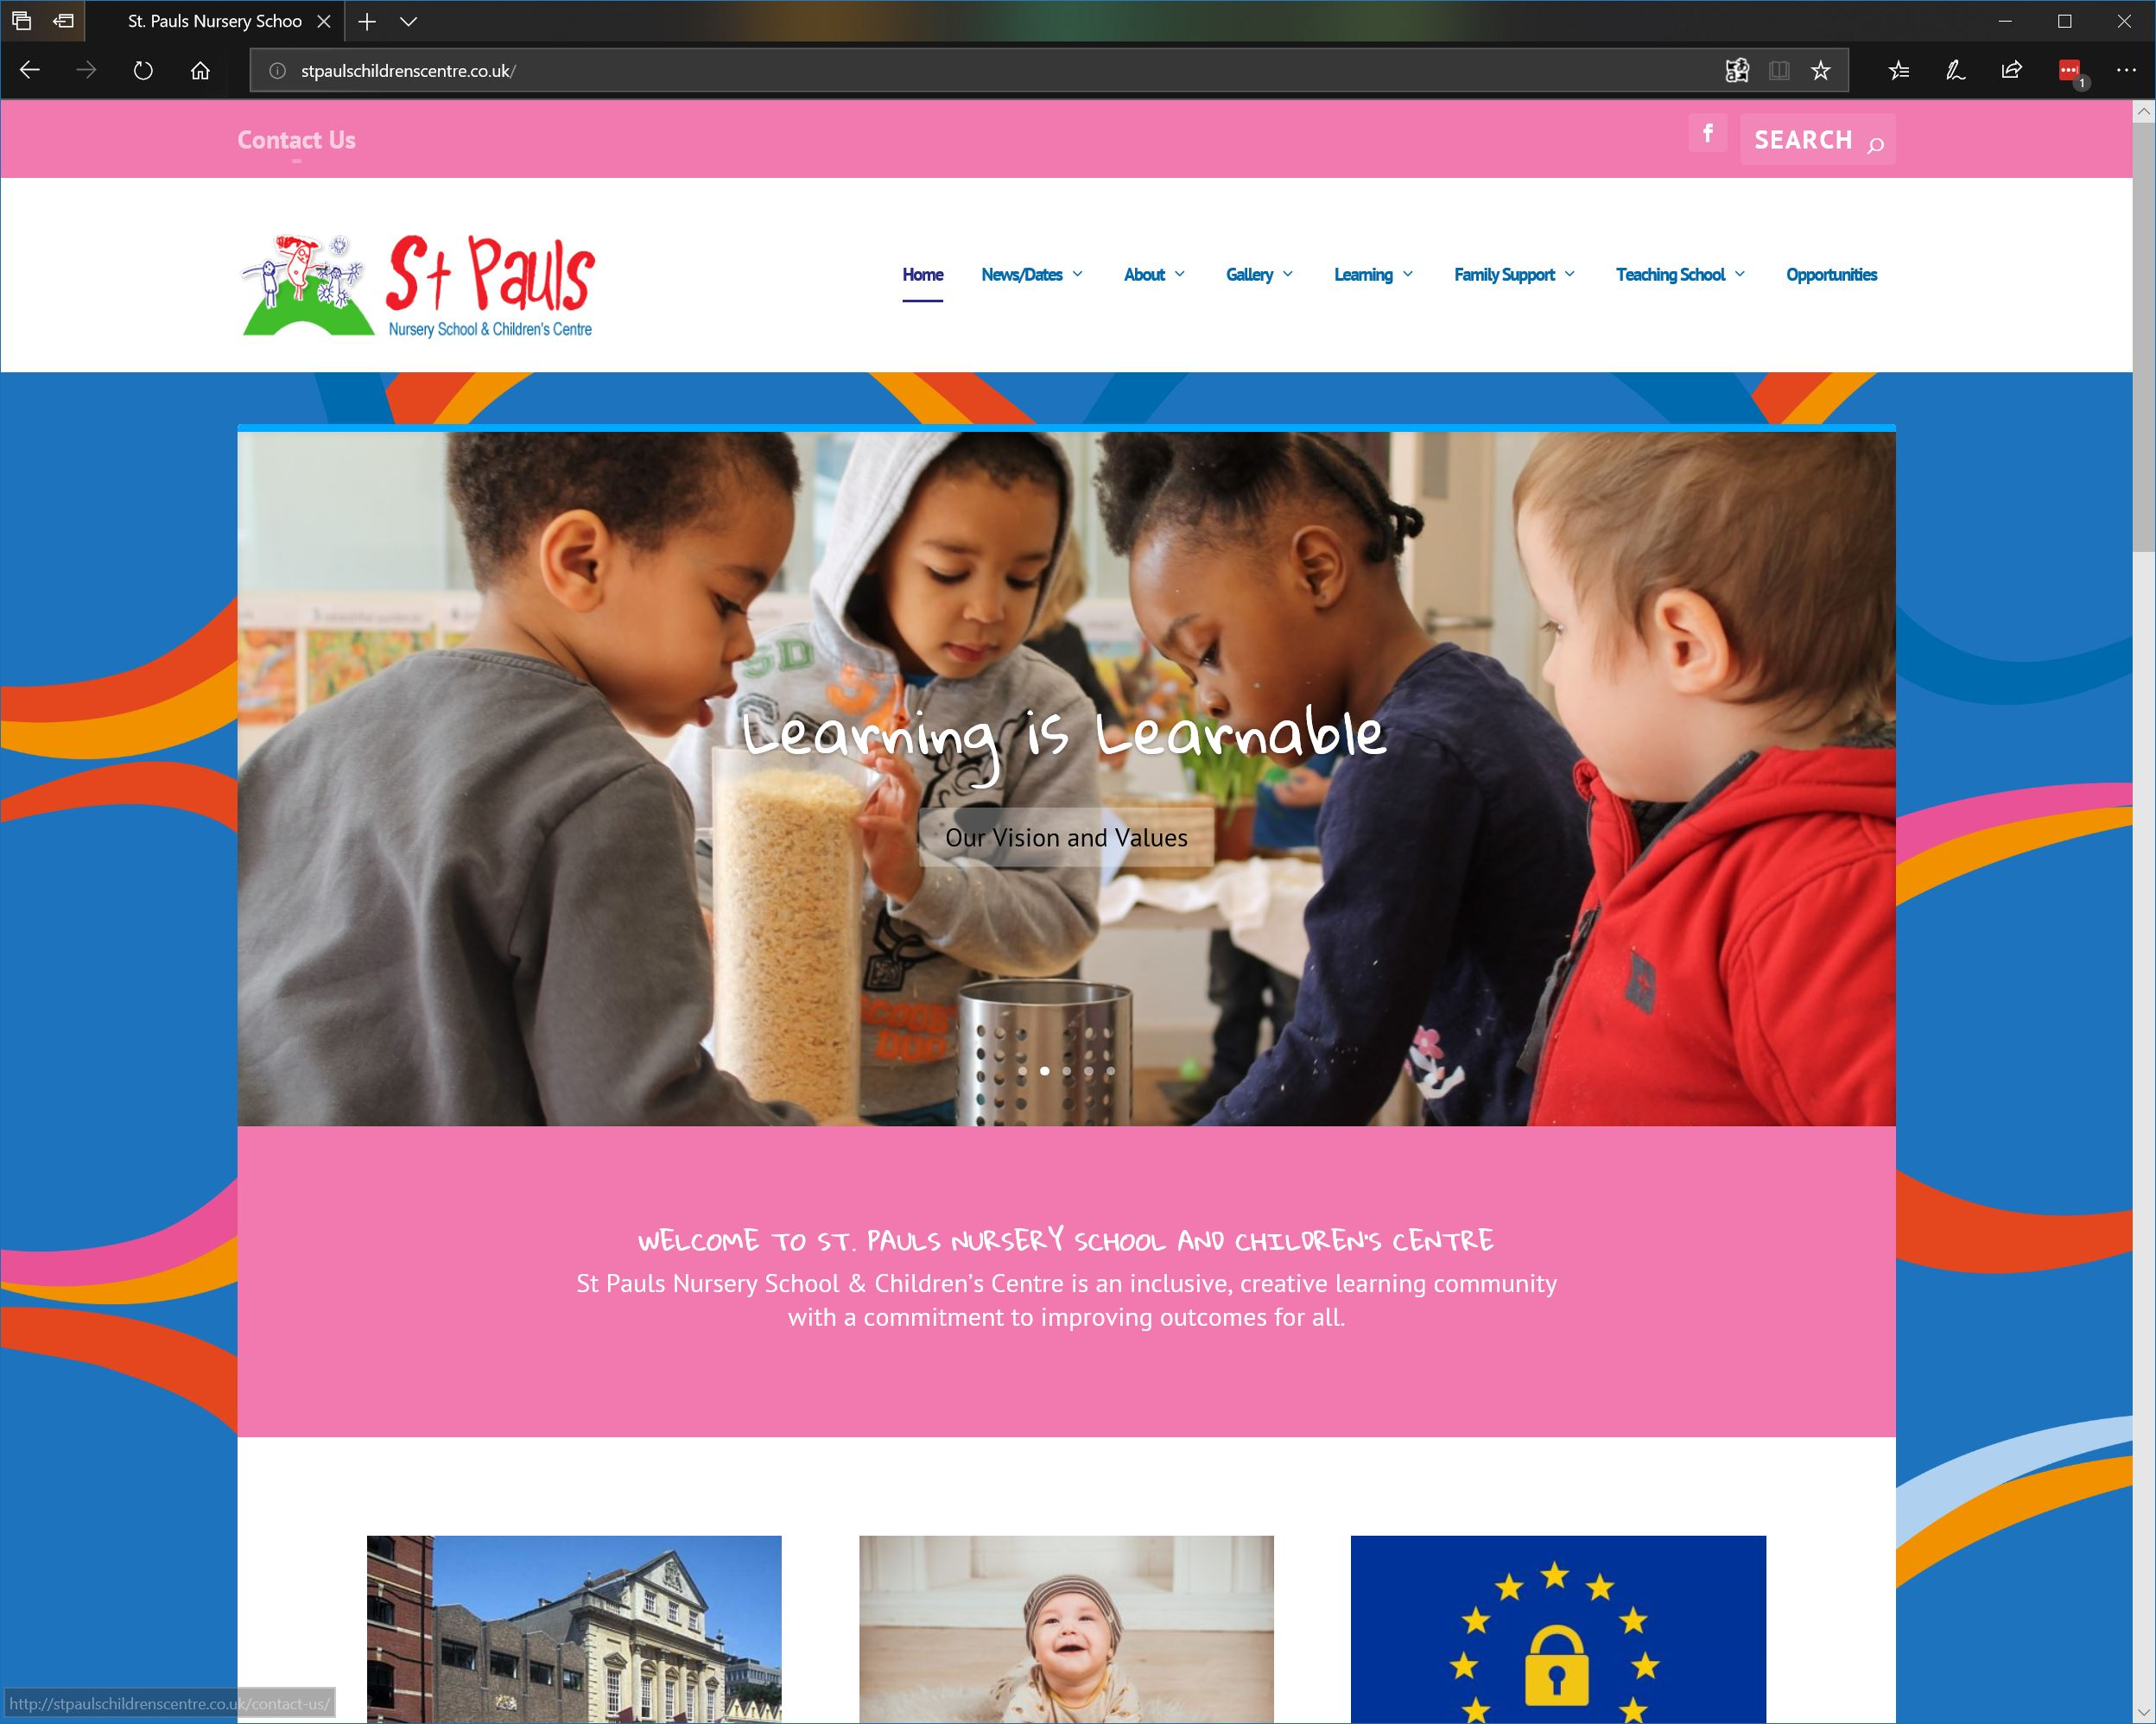 We Developed The Branding And Logo For St Pauls Nursery School Children S Centre Using Their Already Elished Ribbons As A Way To Showcase